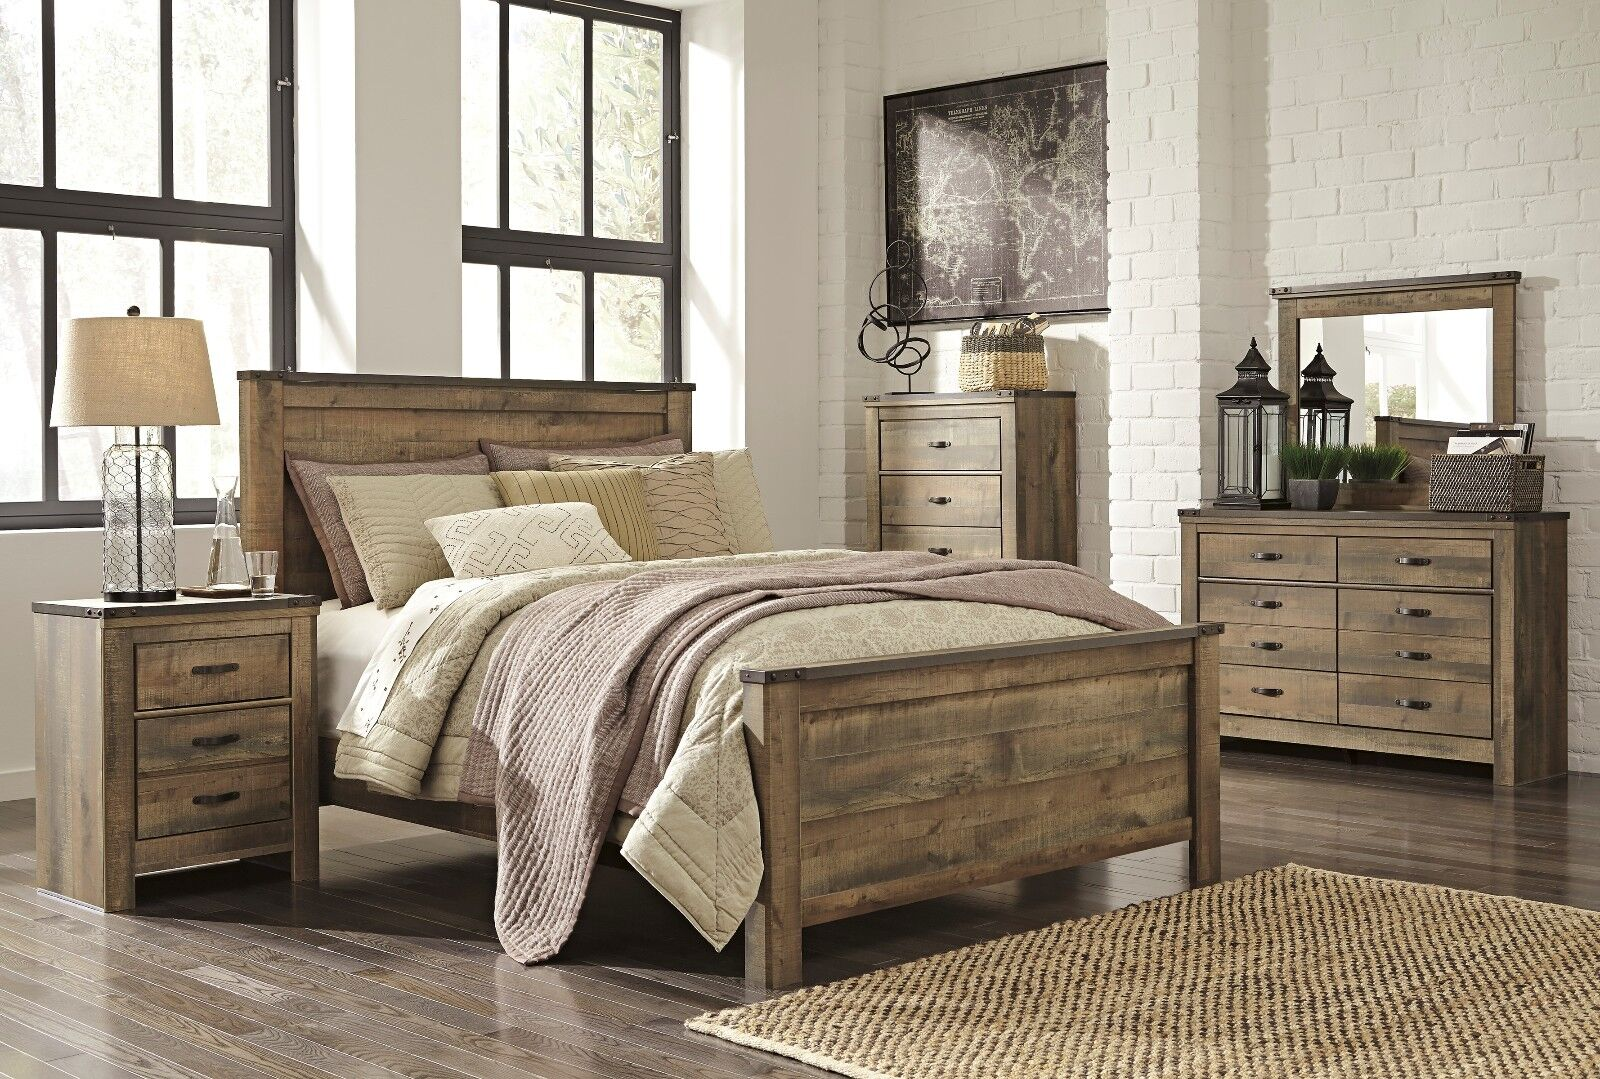 Ashley Trinell Queen Rustic 11 Piece Bed Set Furniture B4411